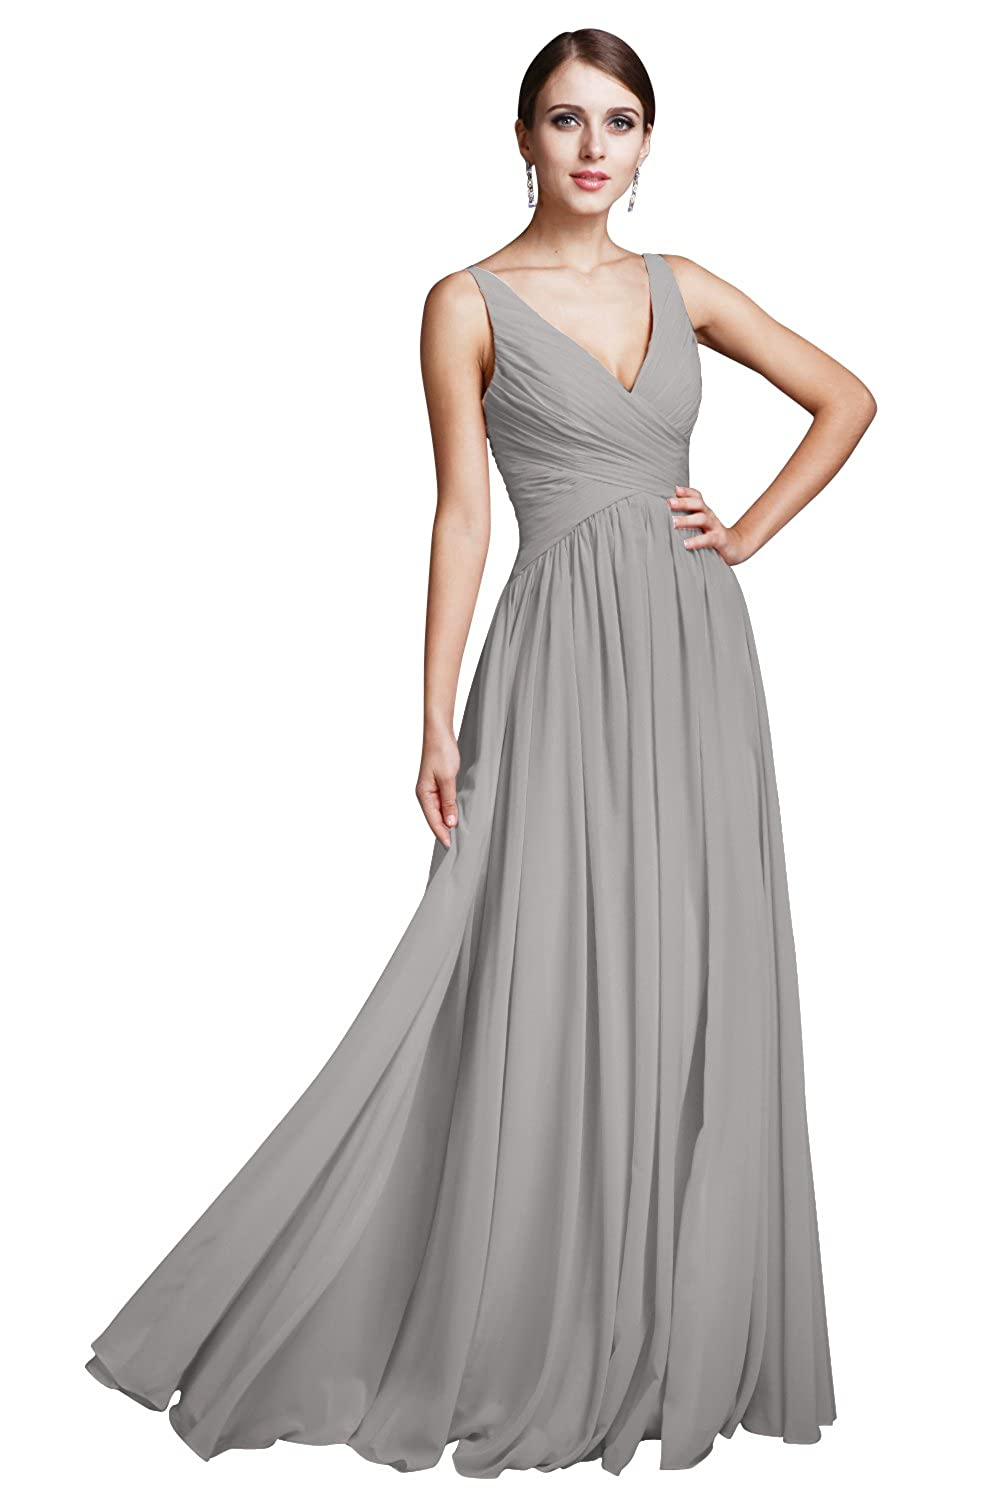 PERSUN Women's A Line V-Neck Prom Dresses Ruched Sleeveless Bridesmaid Dresses